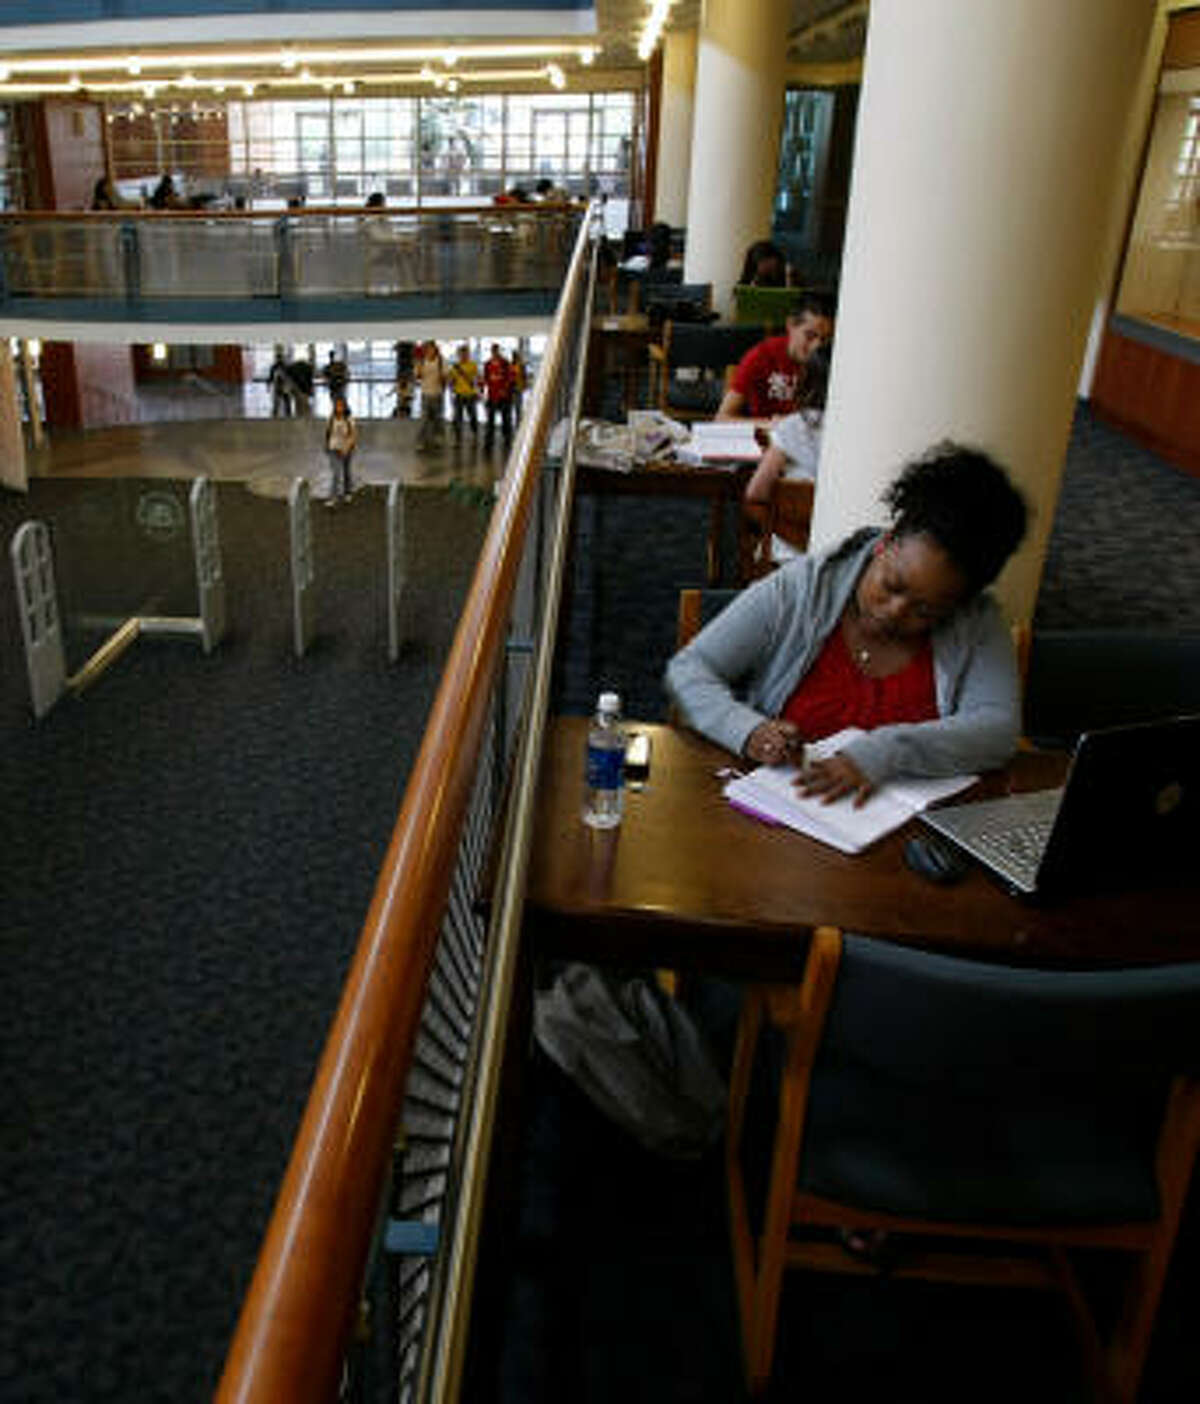 Robyn Harris, 21, a psychology major, studies in the M.D. Anderson Library at the University of Houston, which is vying with other Texas schools for Tier One status.